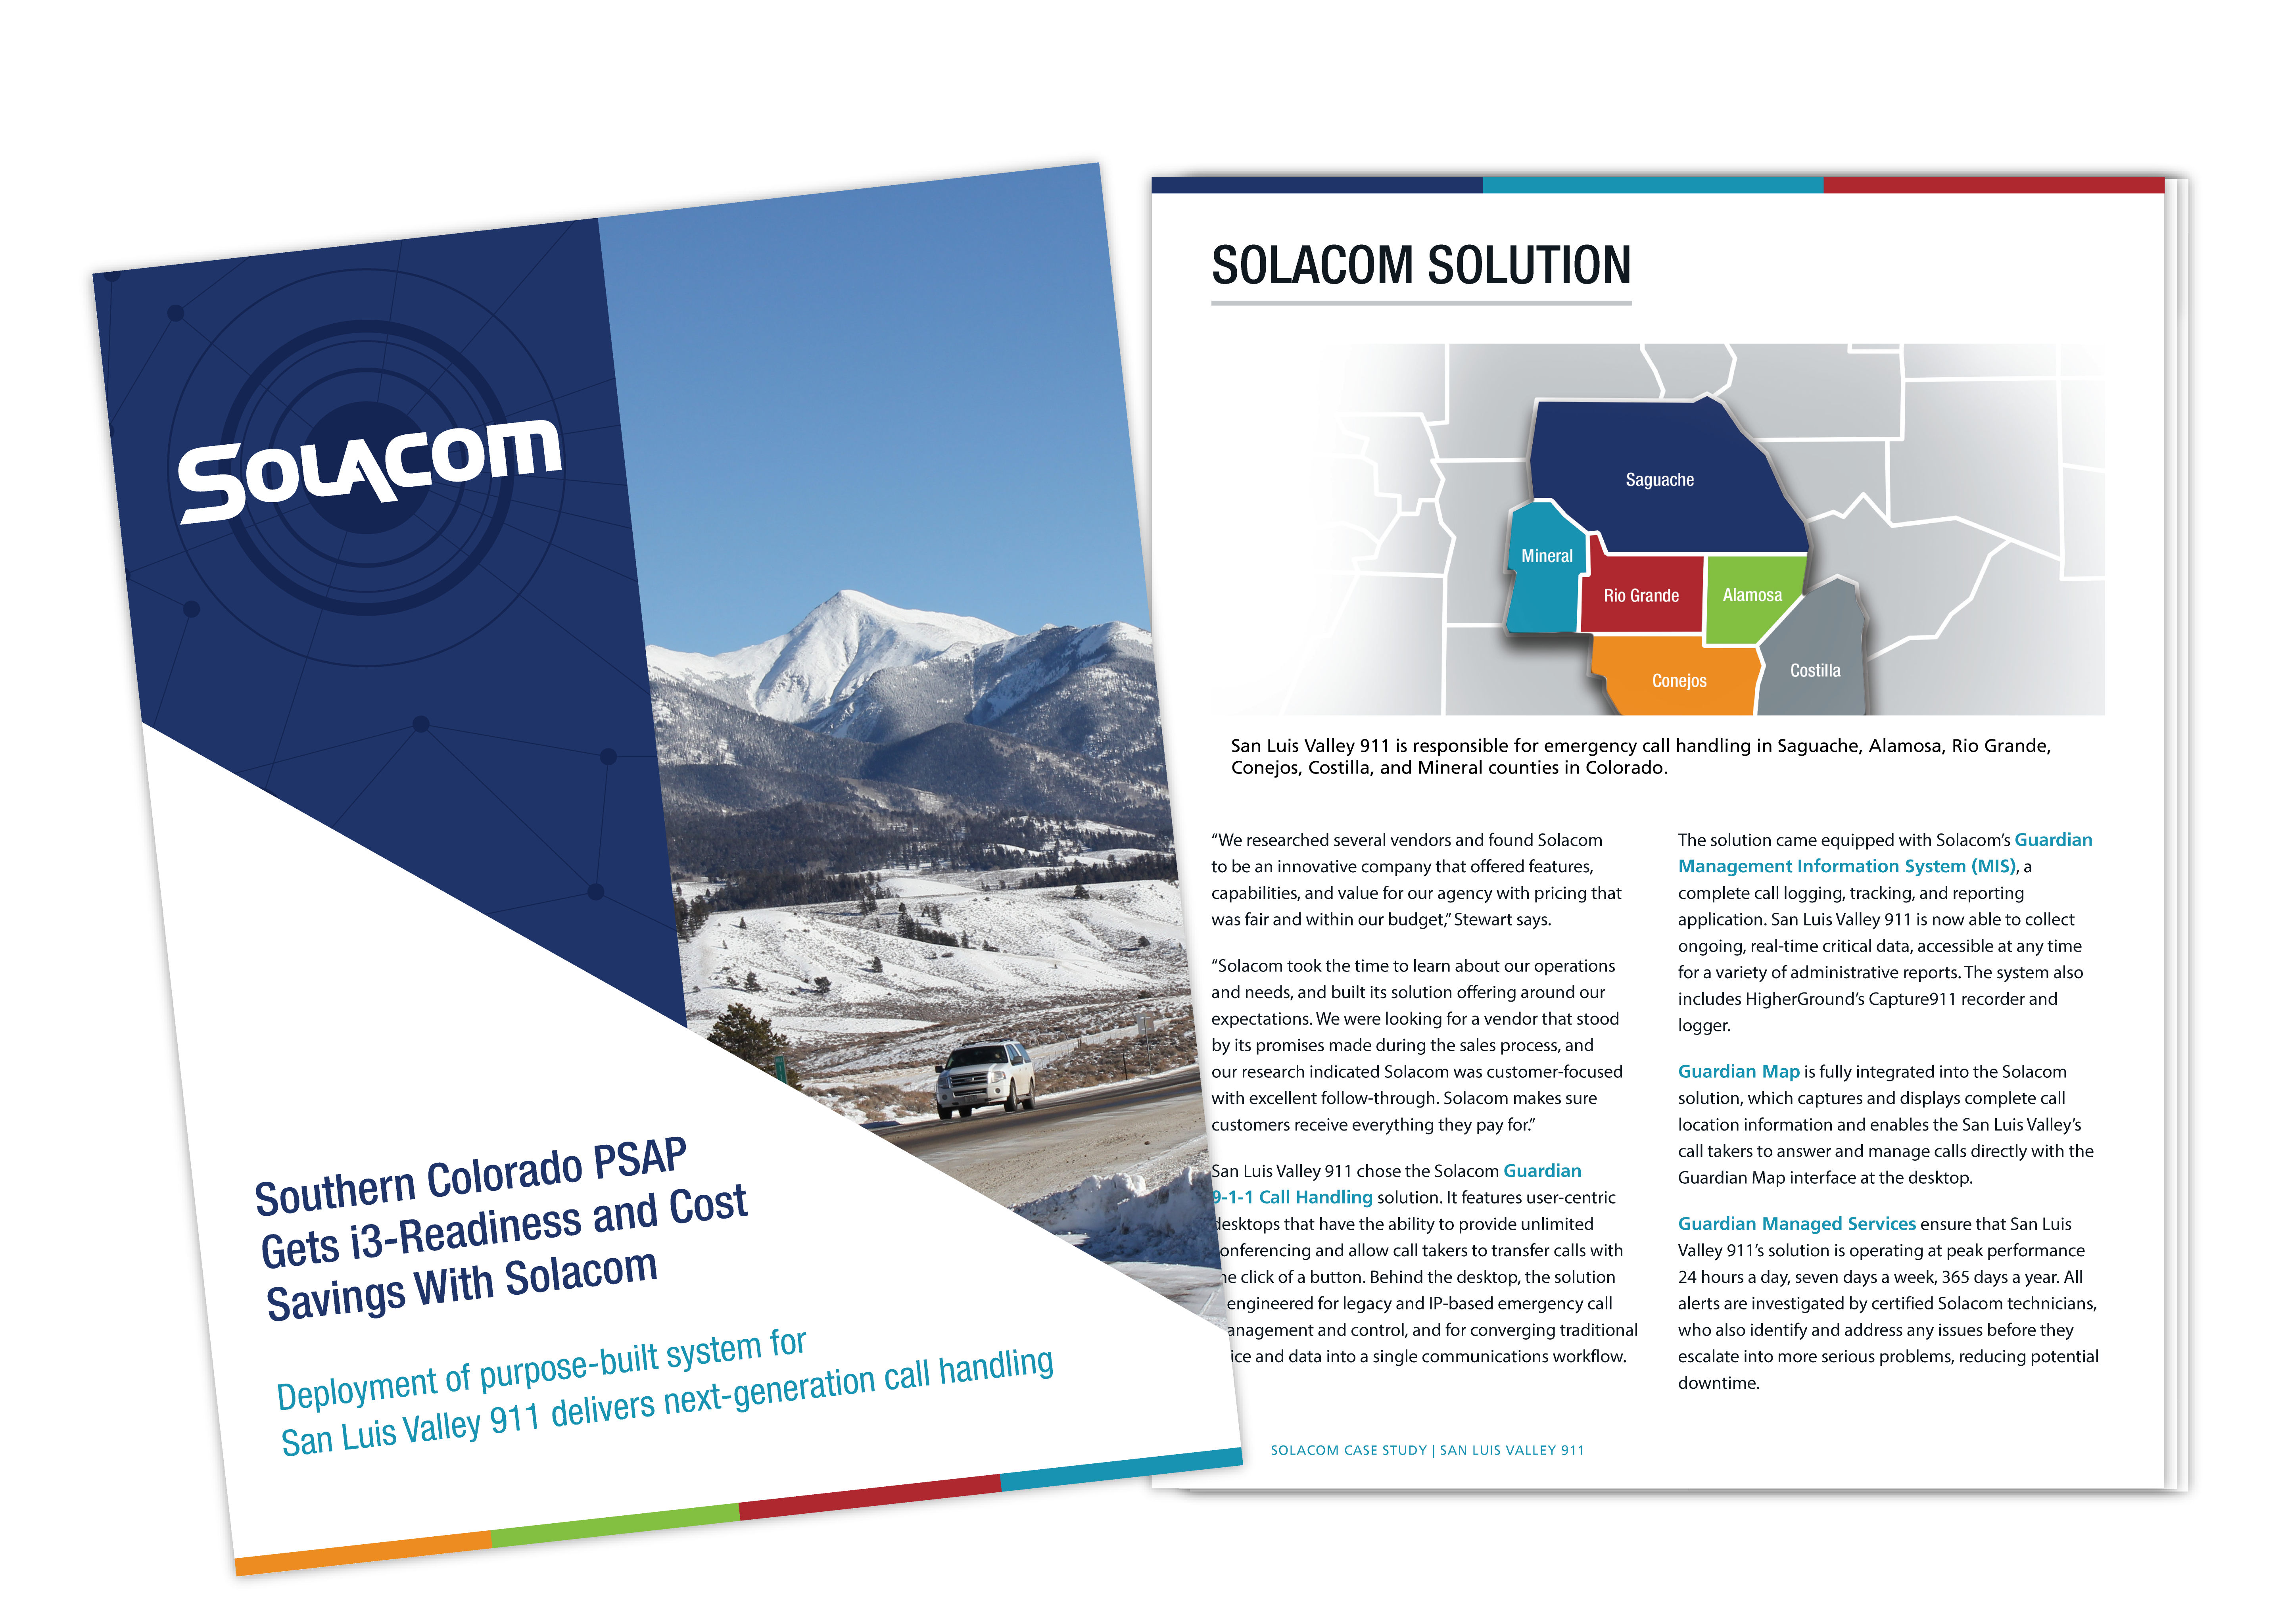 Southern Colorado PSAP Gets i3-Readiness and Cost Savings with Solacom, a Solacom case study